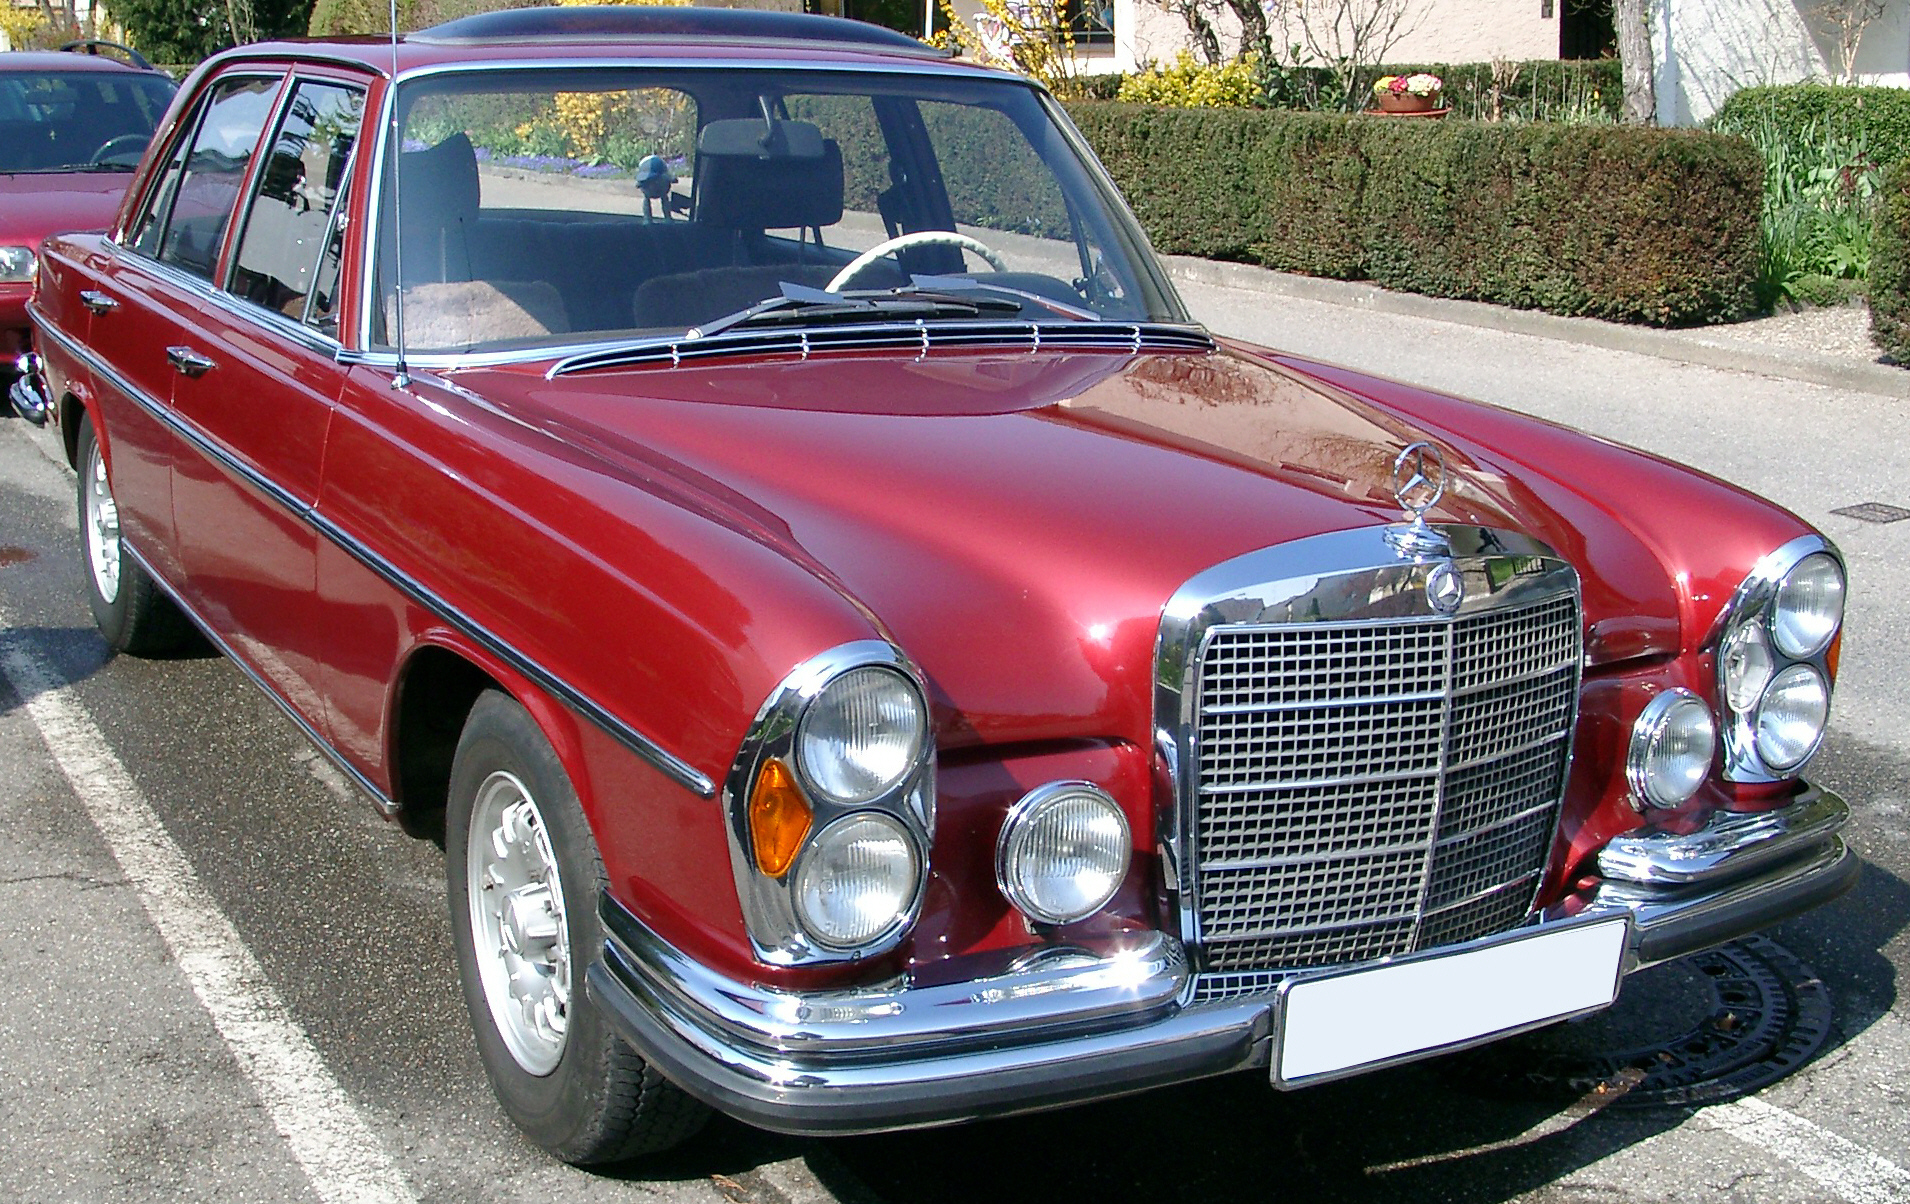 Mercedes benz w108 wallpaper 1910x1204 224975 for Mercedes benz 108